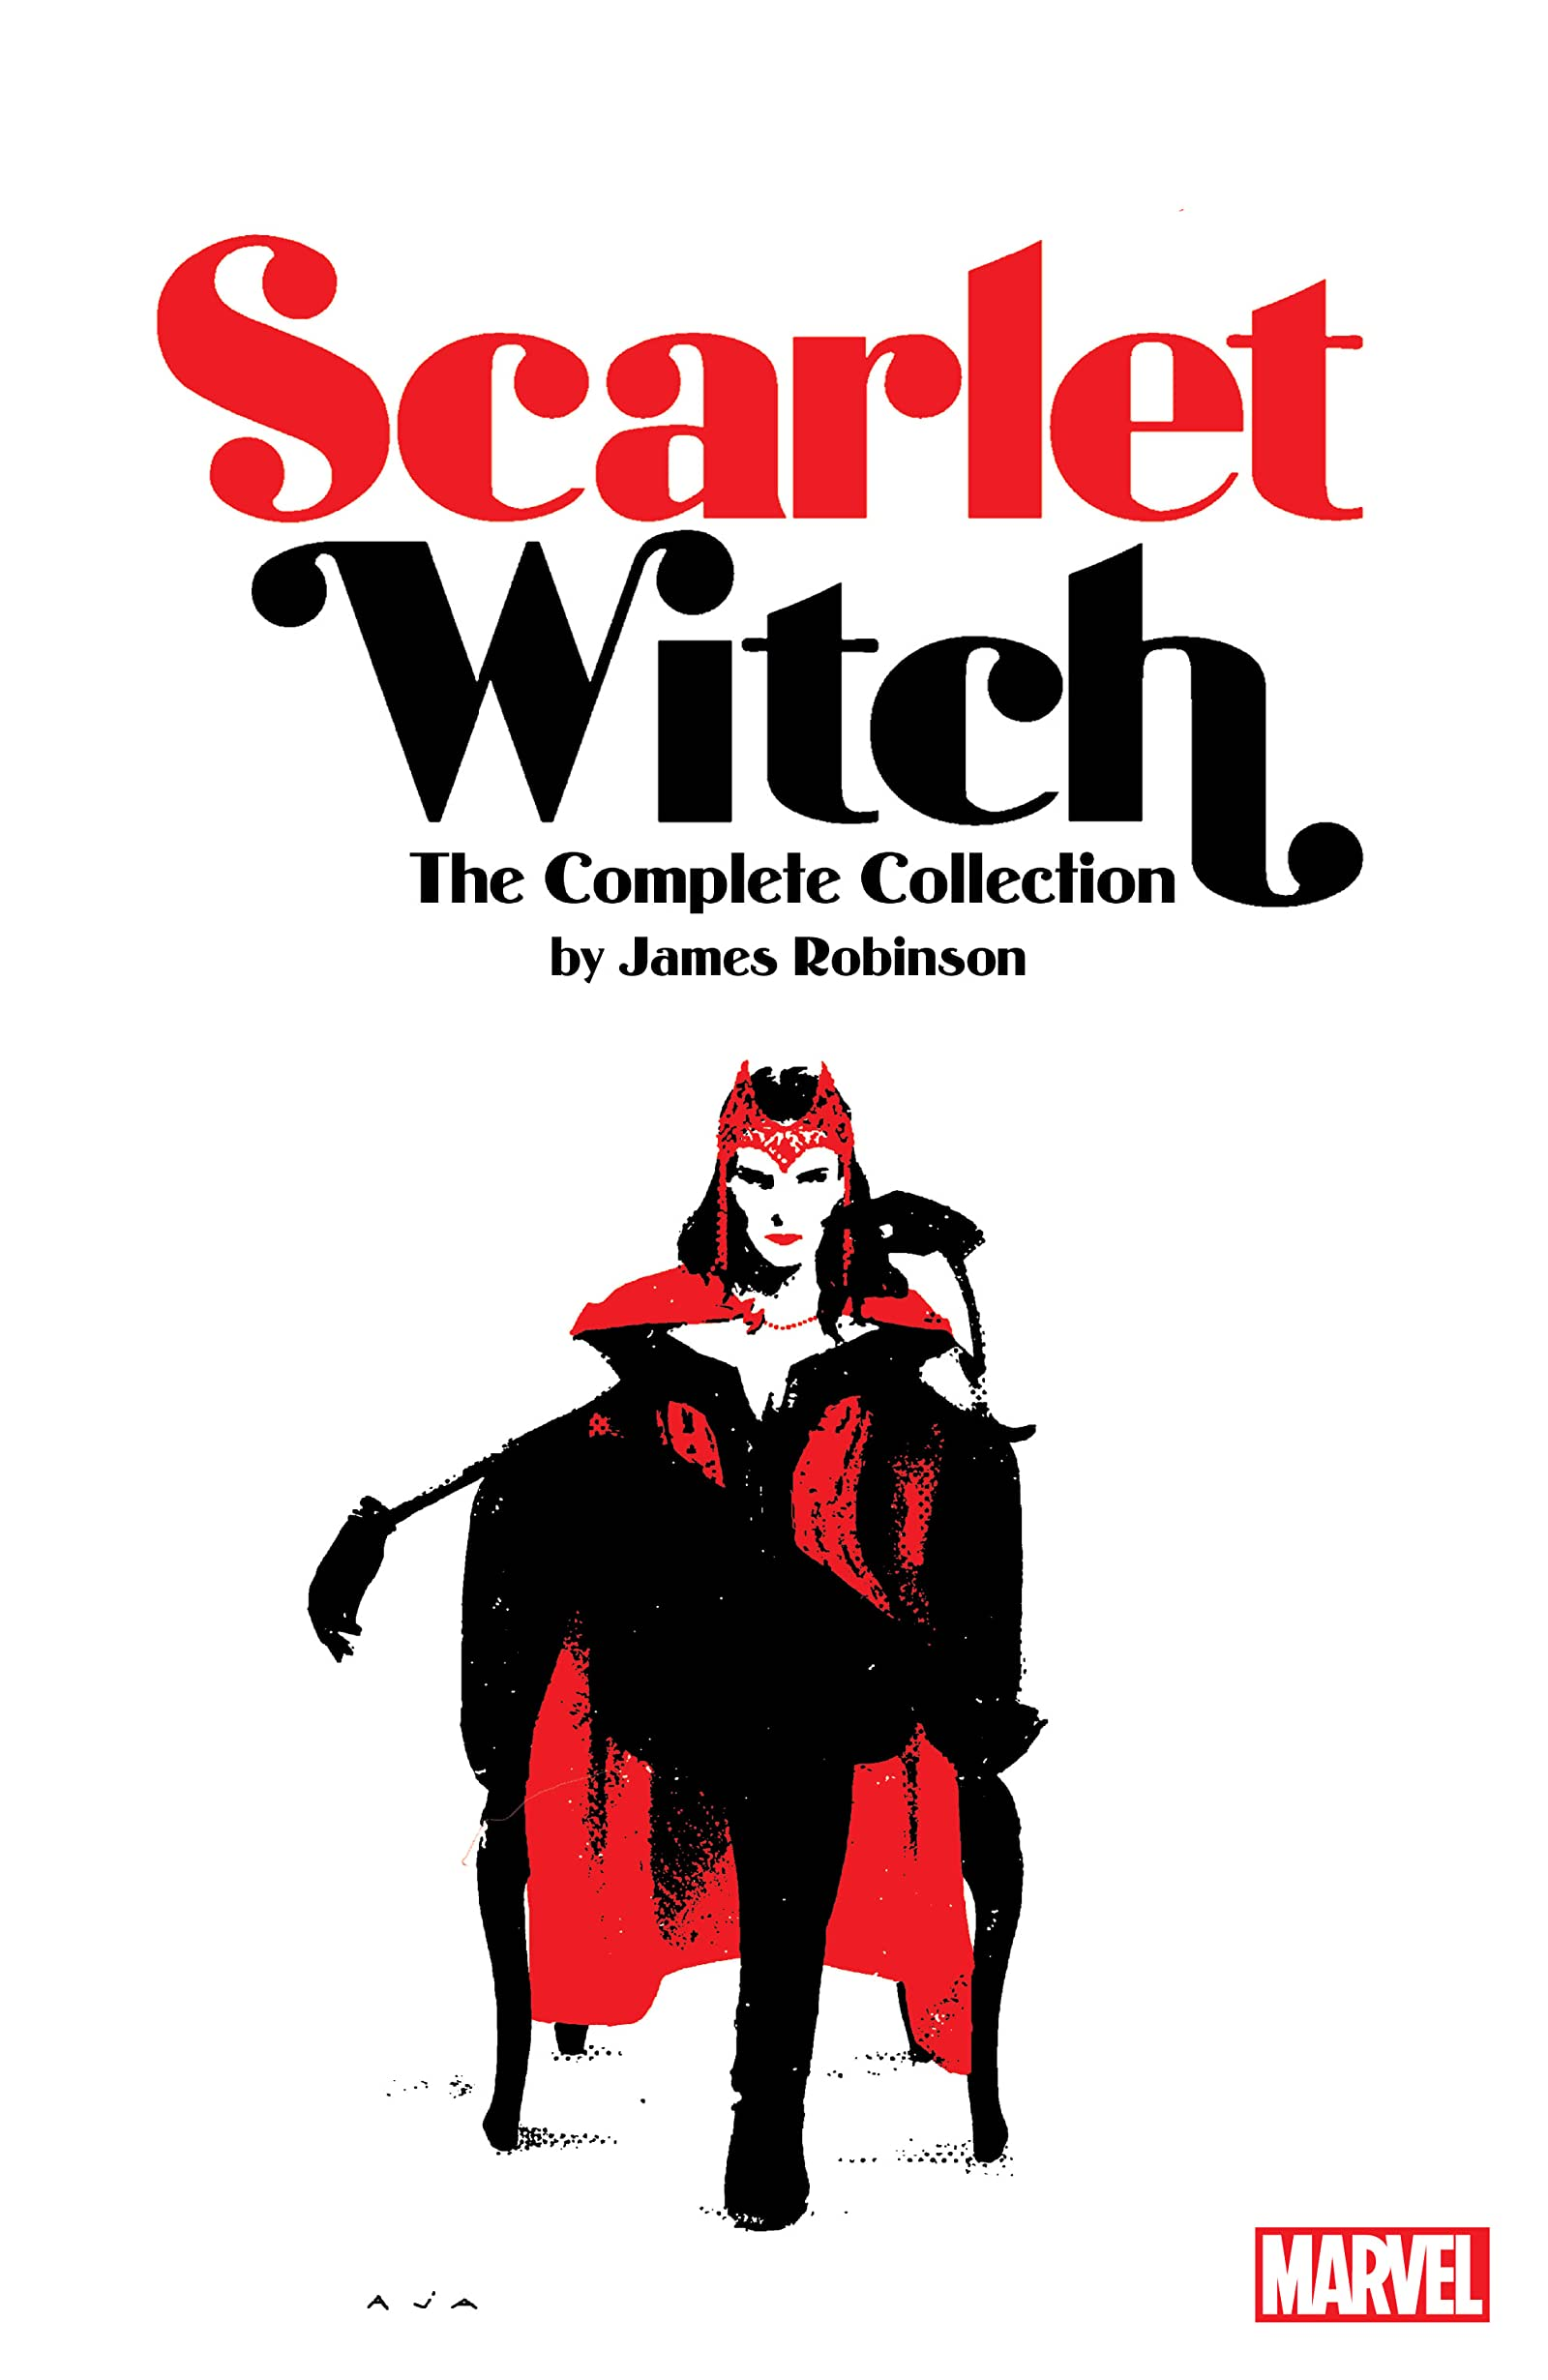 SCARLET WITCH BY JAMES ROBINSON COMPLETE COLLECTION TP